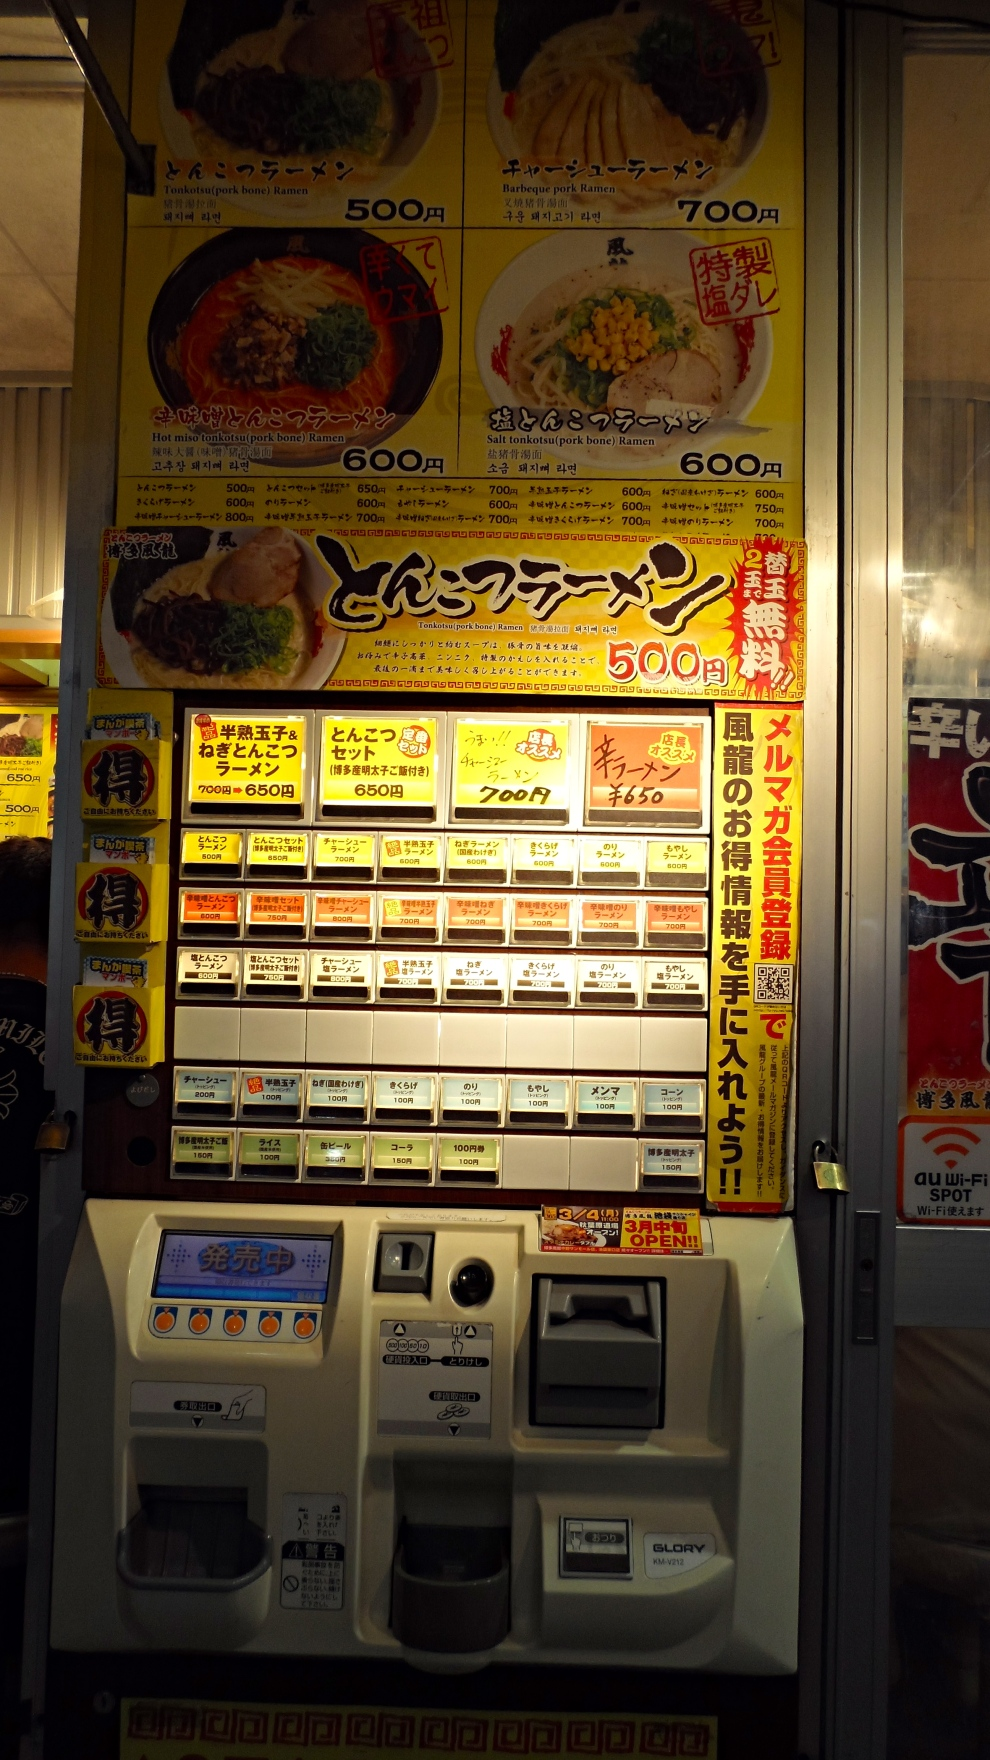 Ordering our ramen from the vending machine to get out meal ticket...